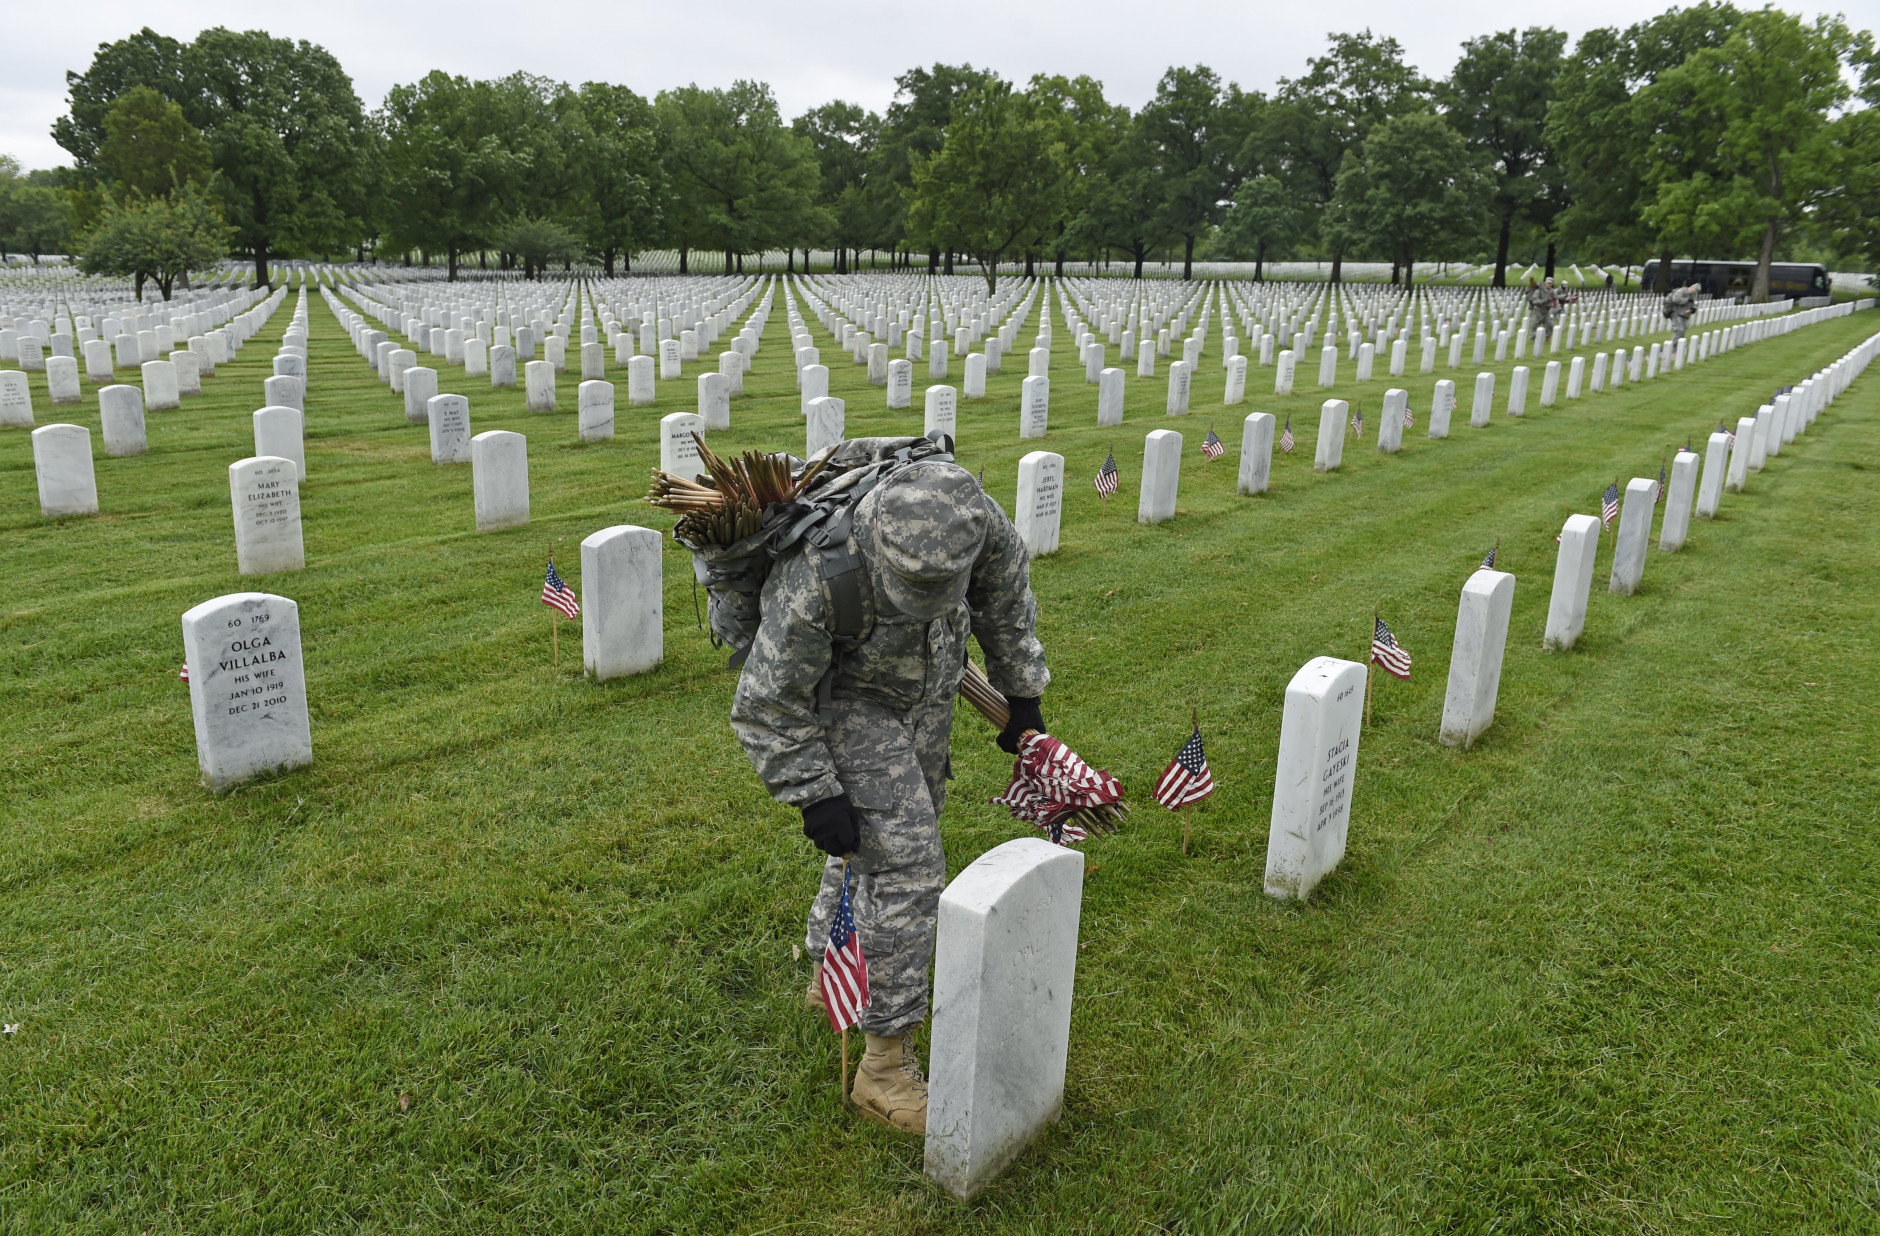 """Third U.S. Infantry Regiment (The Old Guard) Pfc. Kaitlyn Bolde of Scotia, N.Y., places a flag in front of a headstone at Arlington National Cemetery in Arlington, Va., Thursday, May 21, 2015.""""Flags In"""" is an annual tradition that is reserved for The Old Guard since its designation as the Army's official ceremonial unit in 1948. They conduct the mission annually at Arlington National Cemetery and the U.S. Soldiers' and Airmen's Home National Cemetery prior to Memorial Day to honor the nation's fallen military heroes. (AP Photo/Susan Walsh)"""